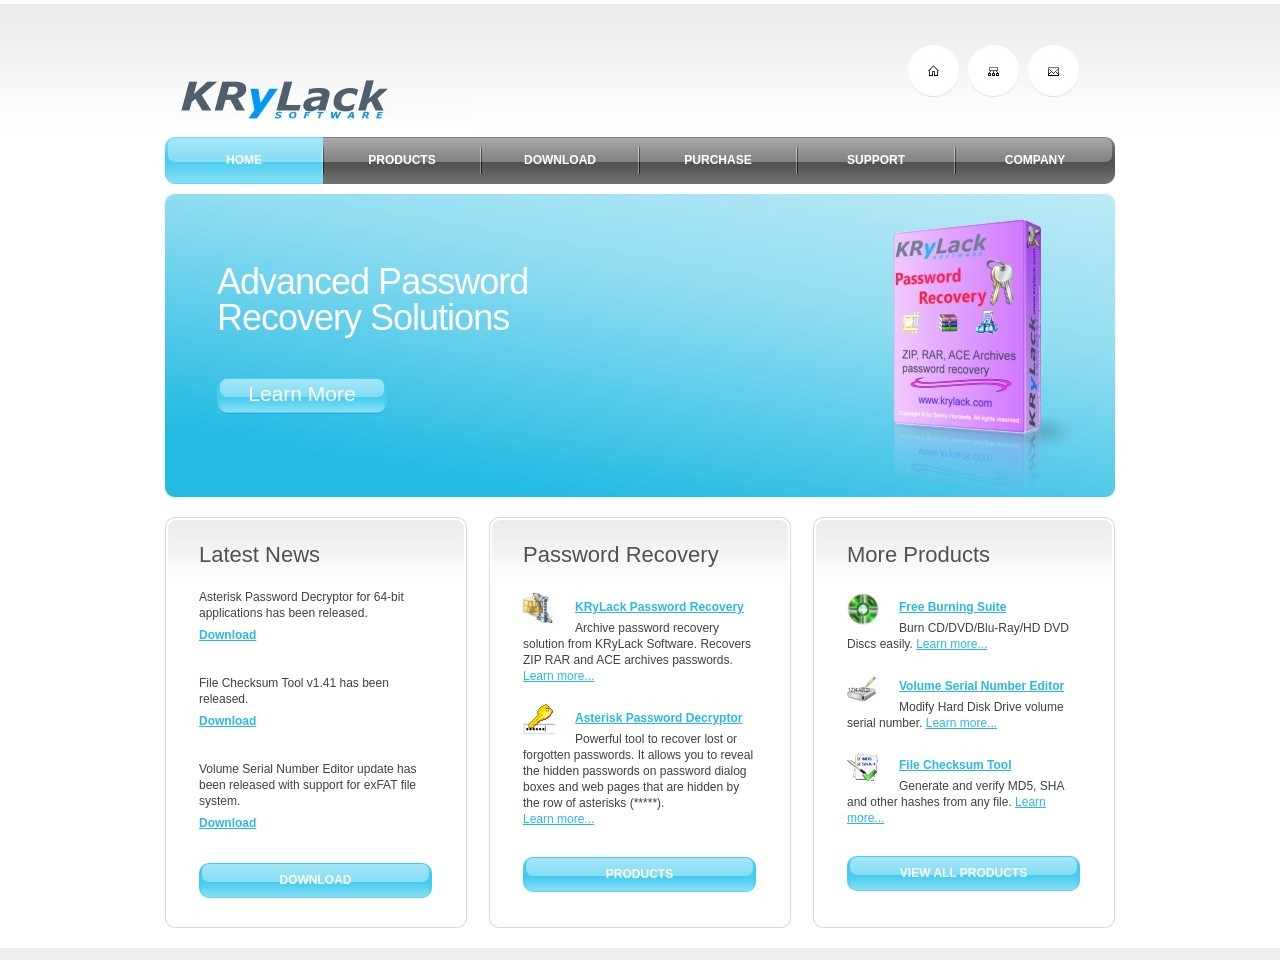 KRyLack Software